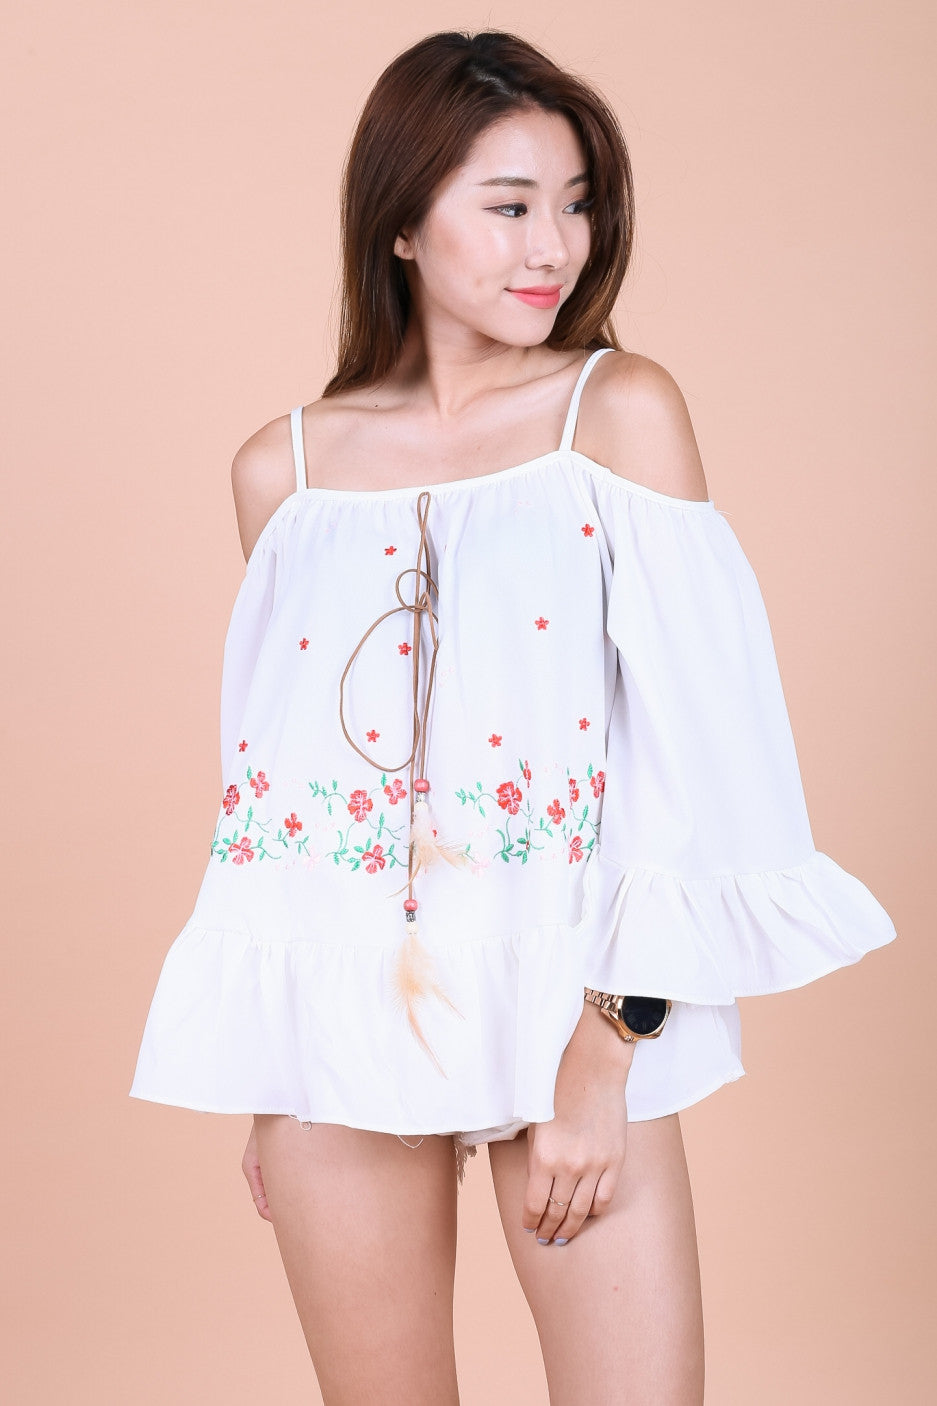 FLORAL EMBROIDERY BABYDOLL TOP IN WHITE - TOPAZETTE